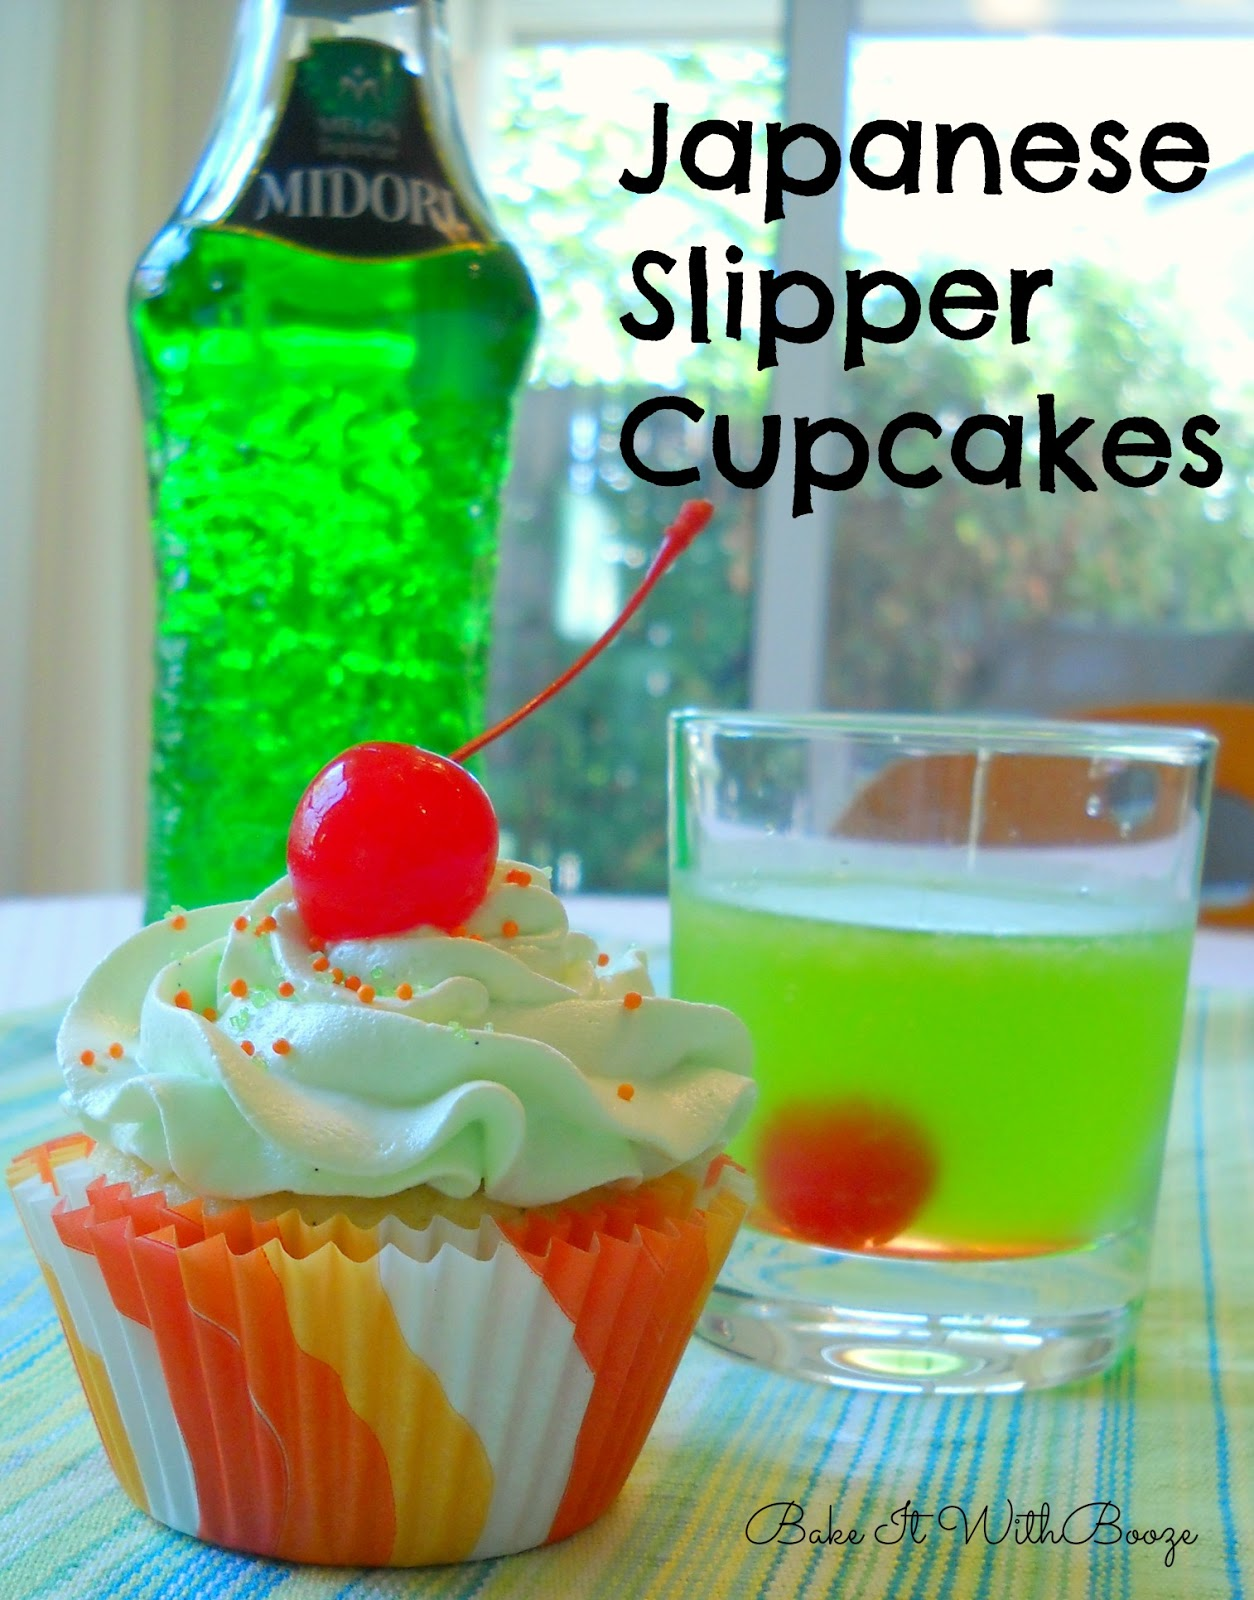 Japanese Slipper Cupcakes with Midori